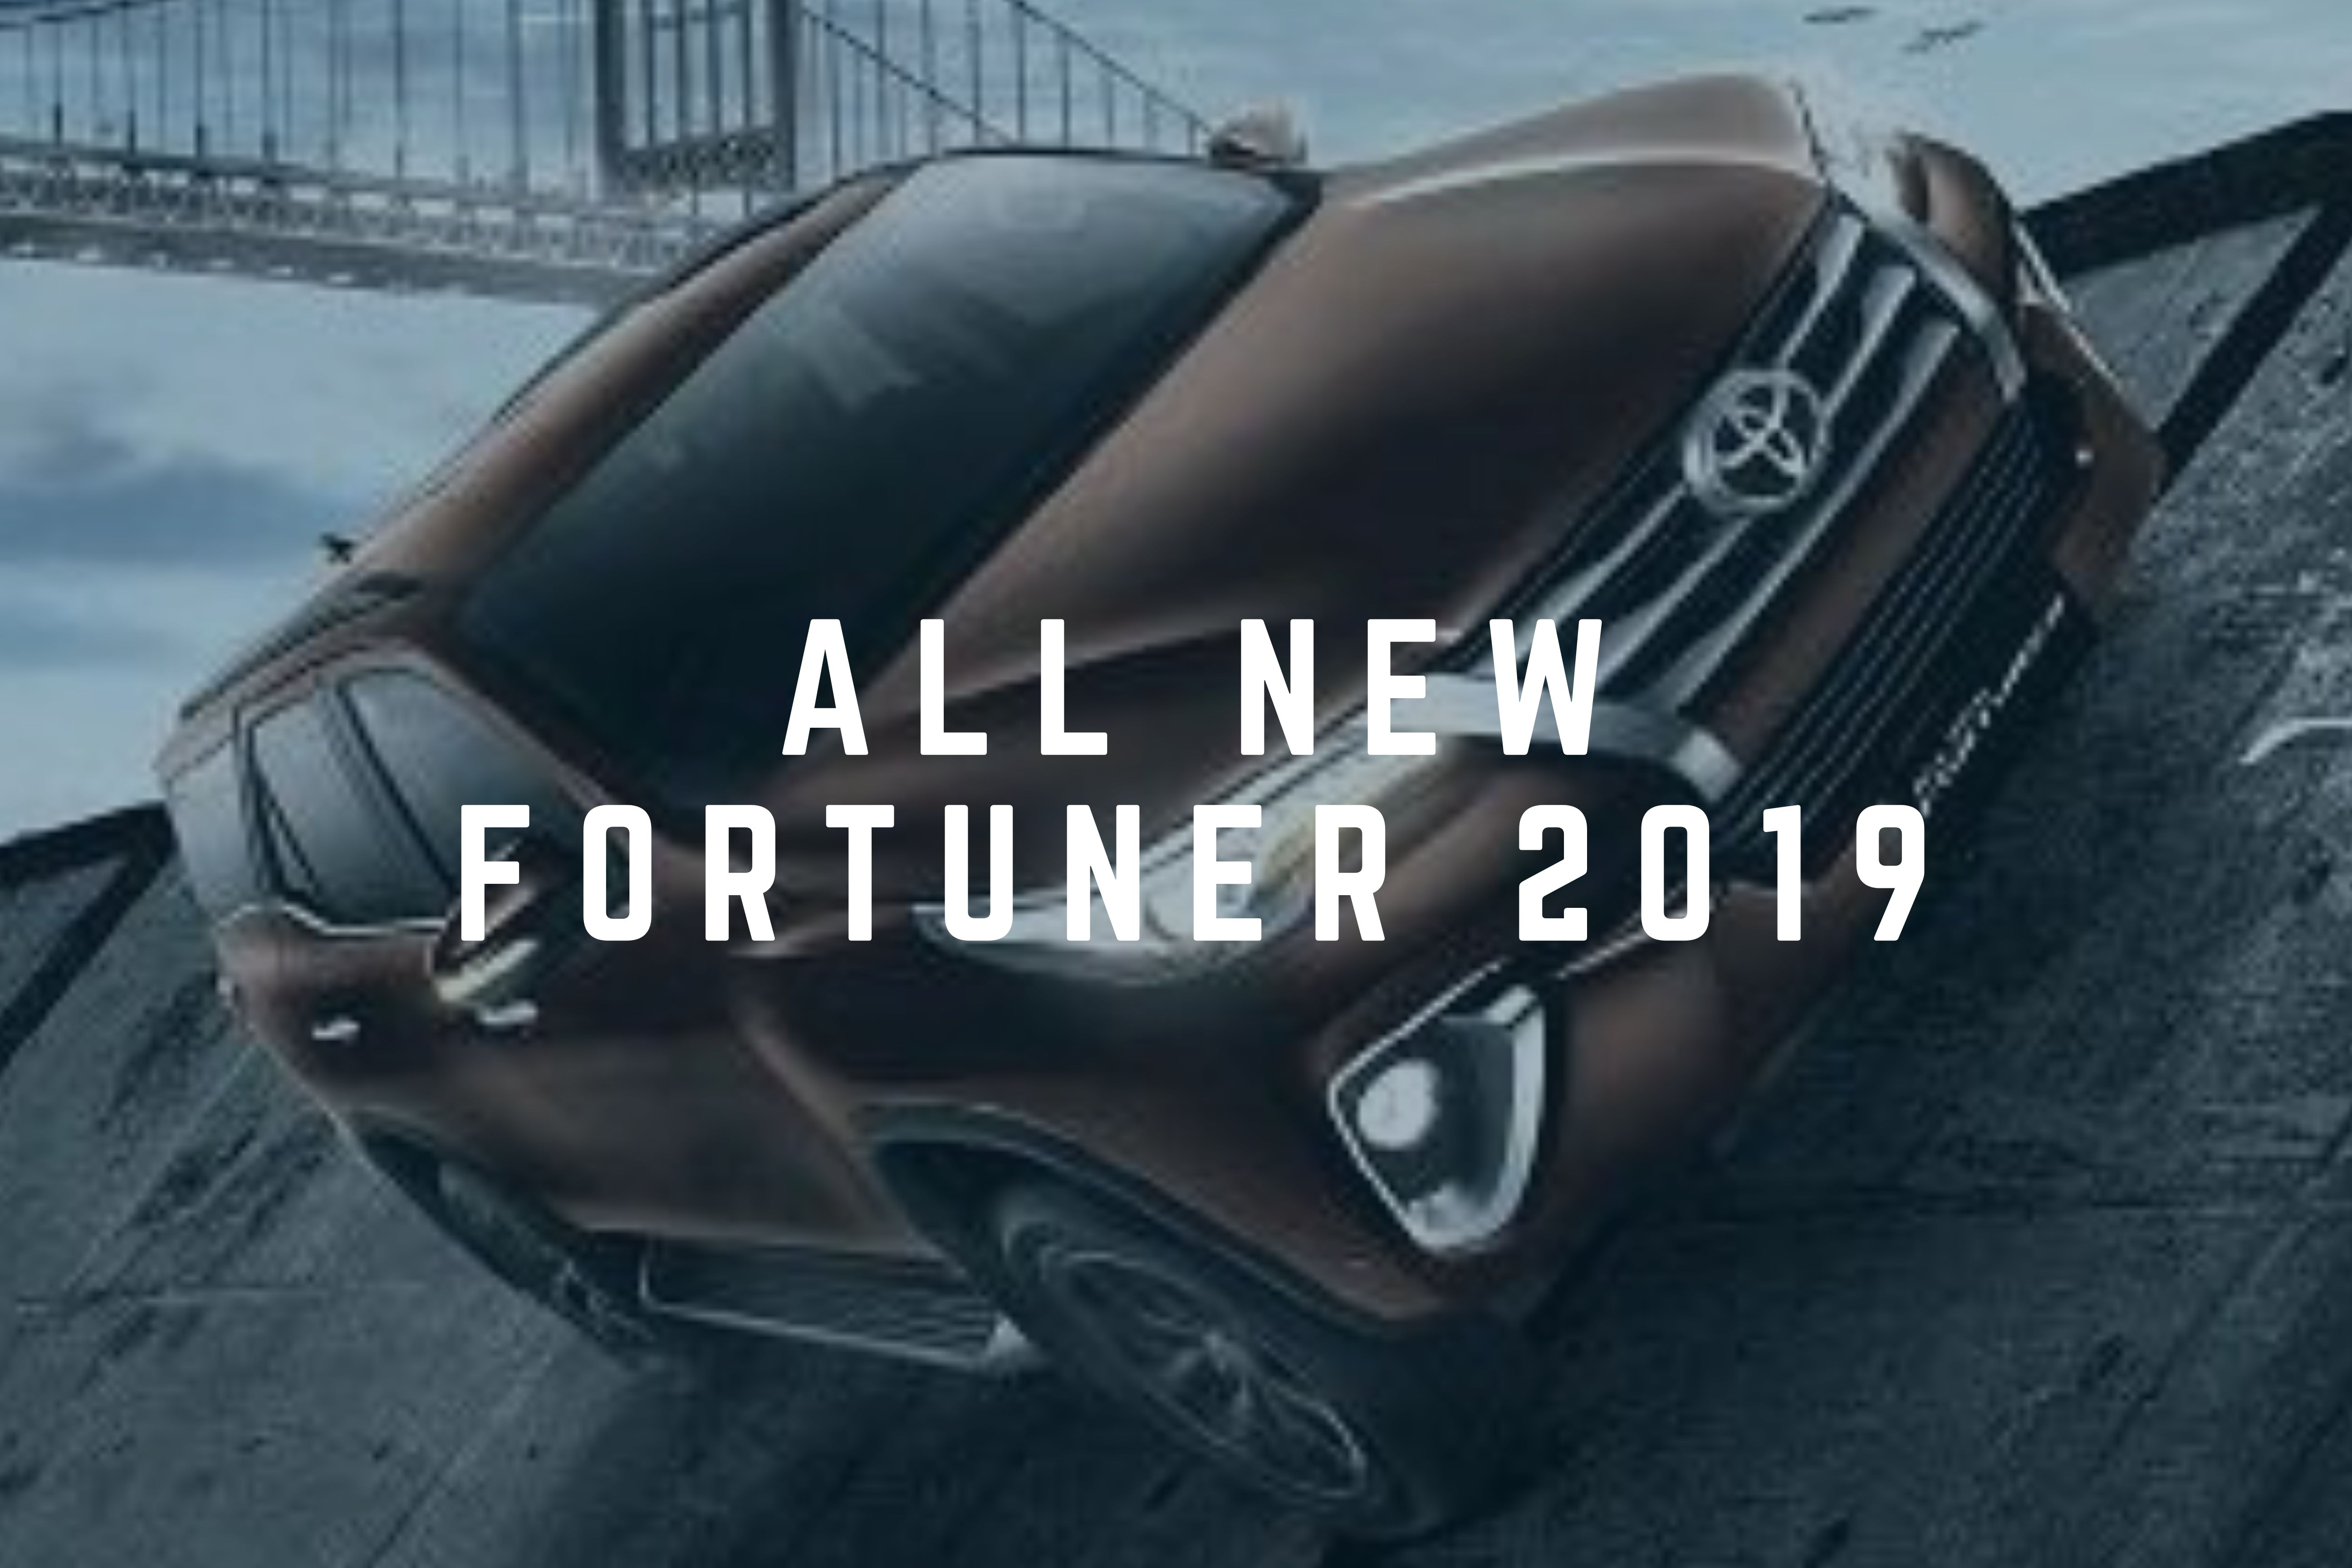 All New Fortuner 2019